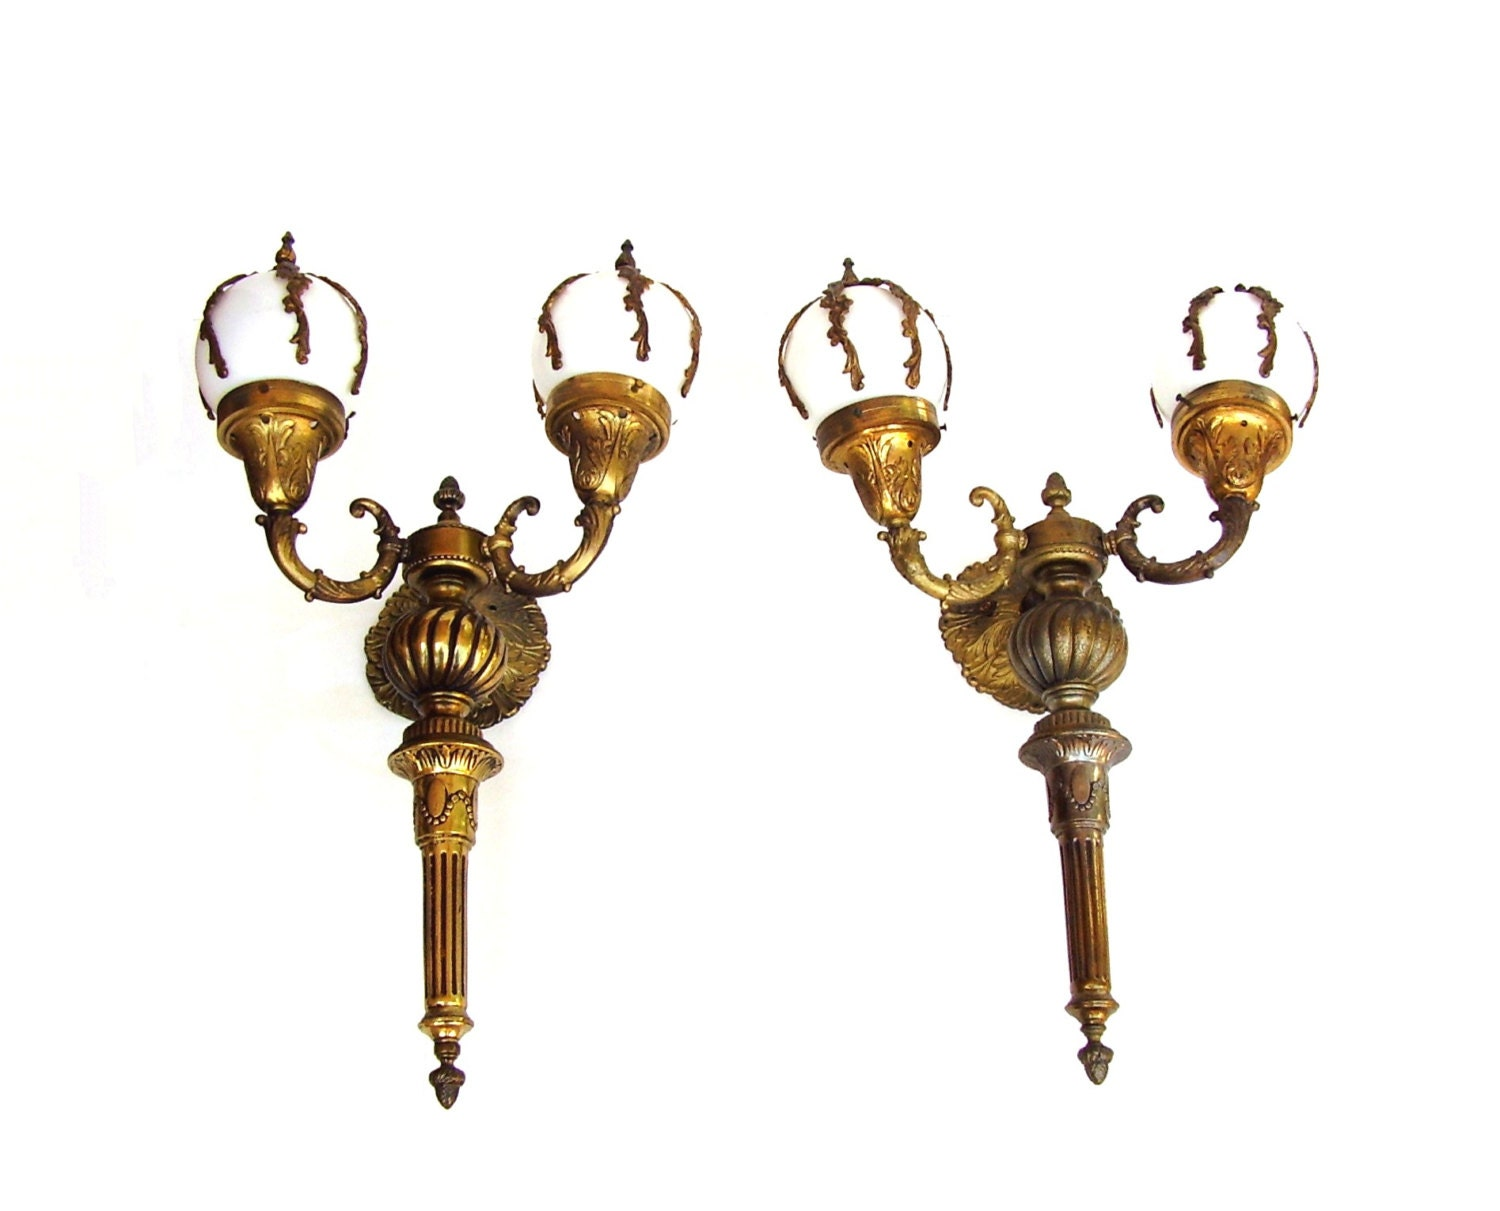 Antique Wall Sconce French Lamps Electric By OceansideCastle